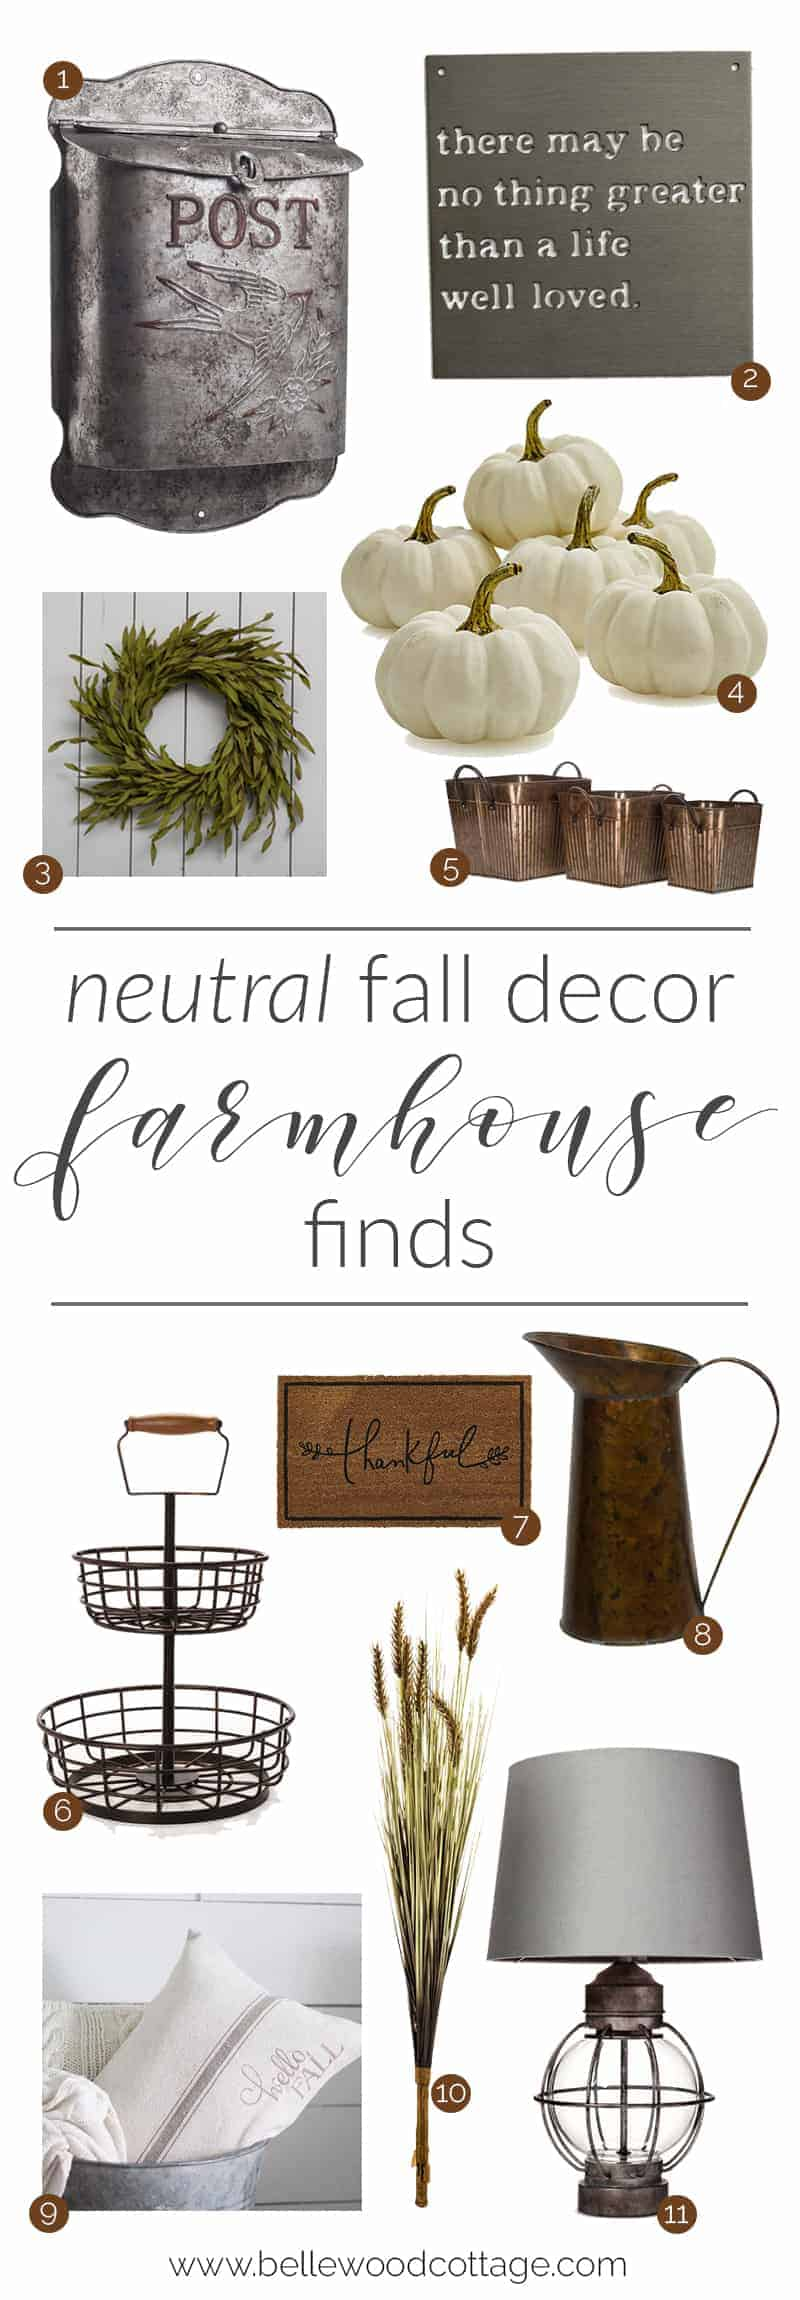 My latest farmhouse finds! Lots of neutral fall farmhouse decor that embraces a rustic aesthetic and fills your home with the coziness of autumn tones.